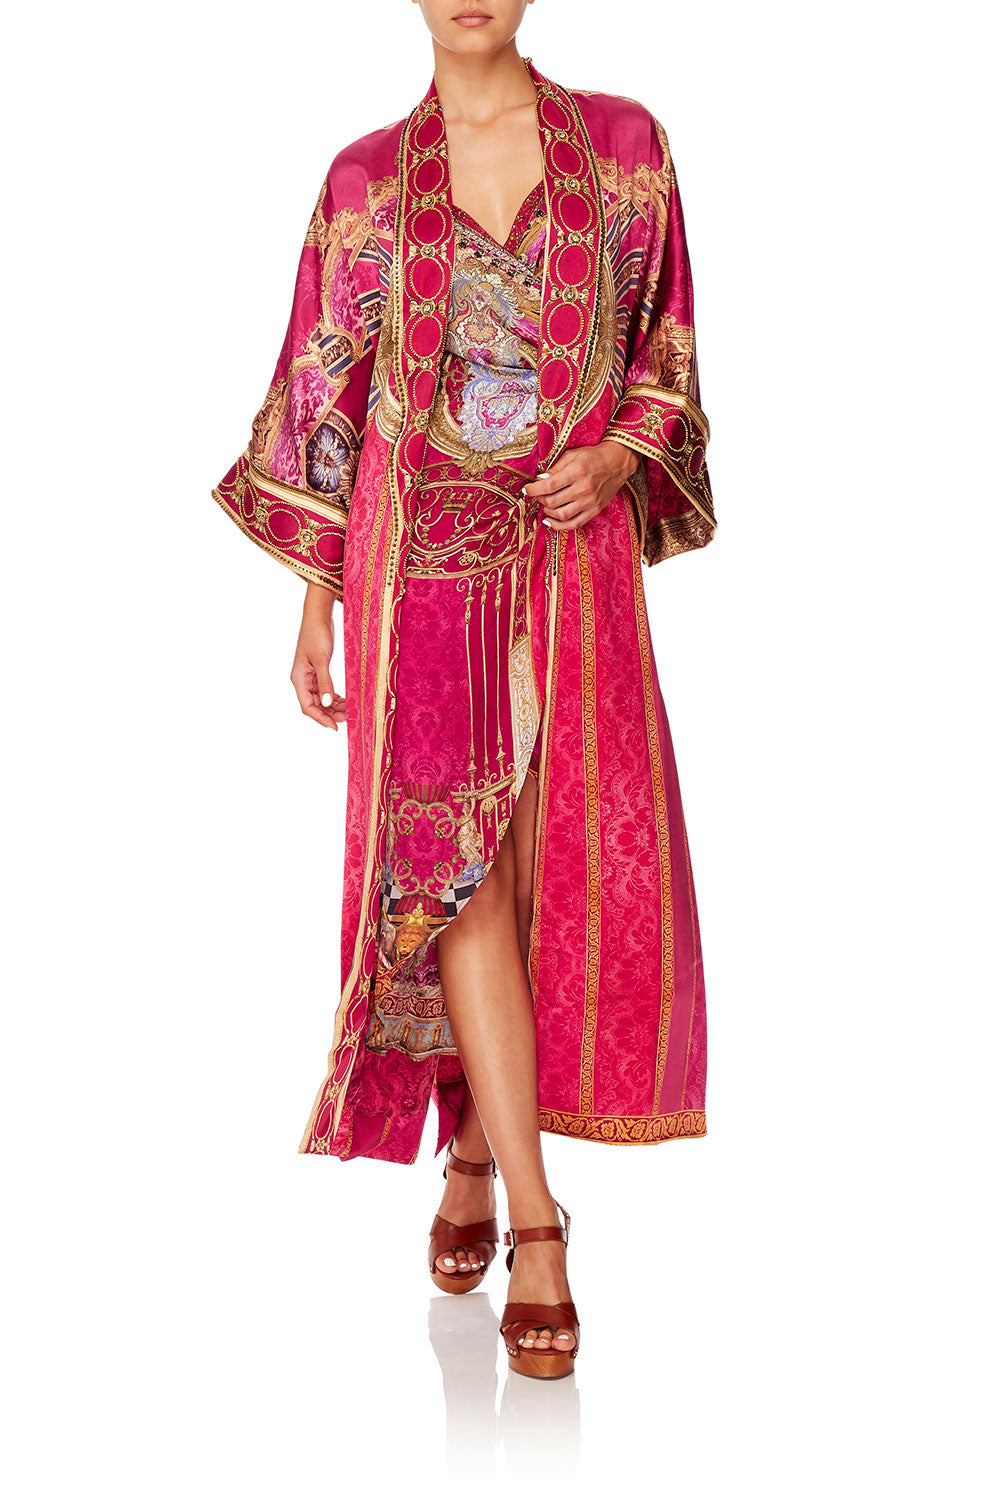 LONG ROBE WITH NARROW COLLAR LOUNGE HOUR